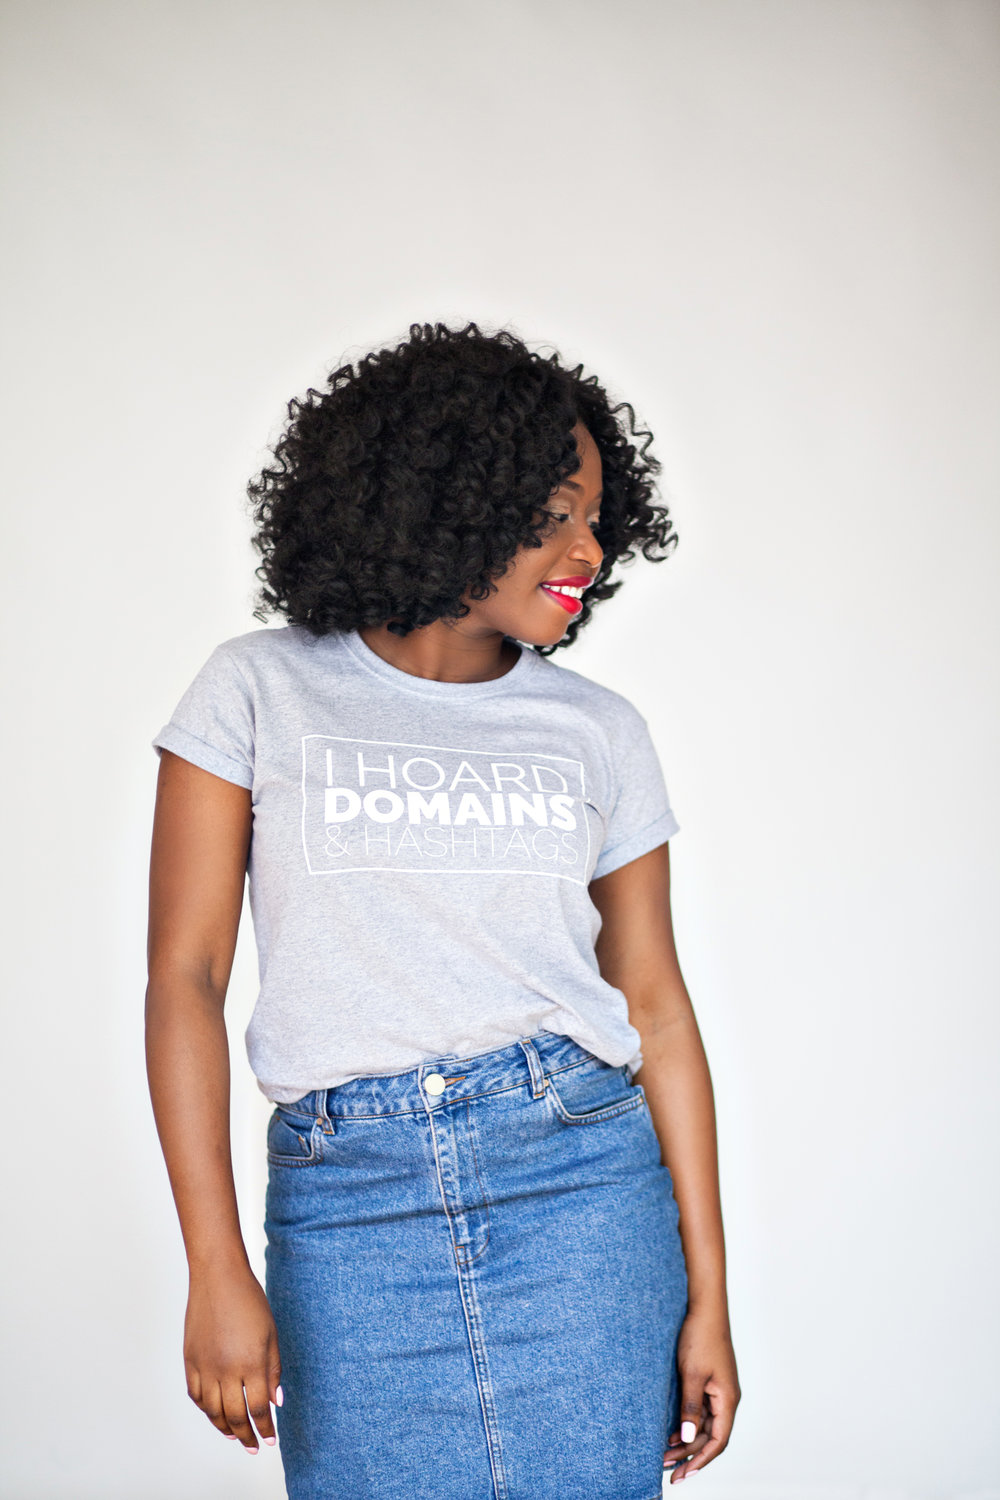 The Hoard Tee From The Original Collection